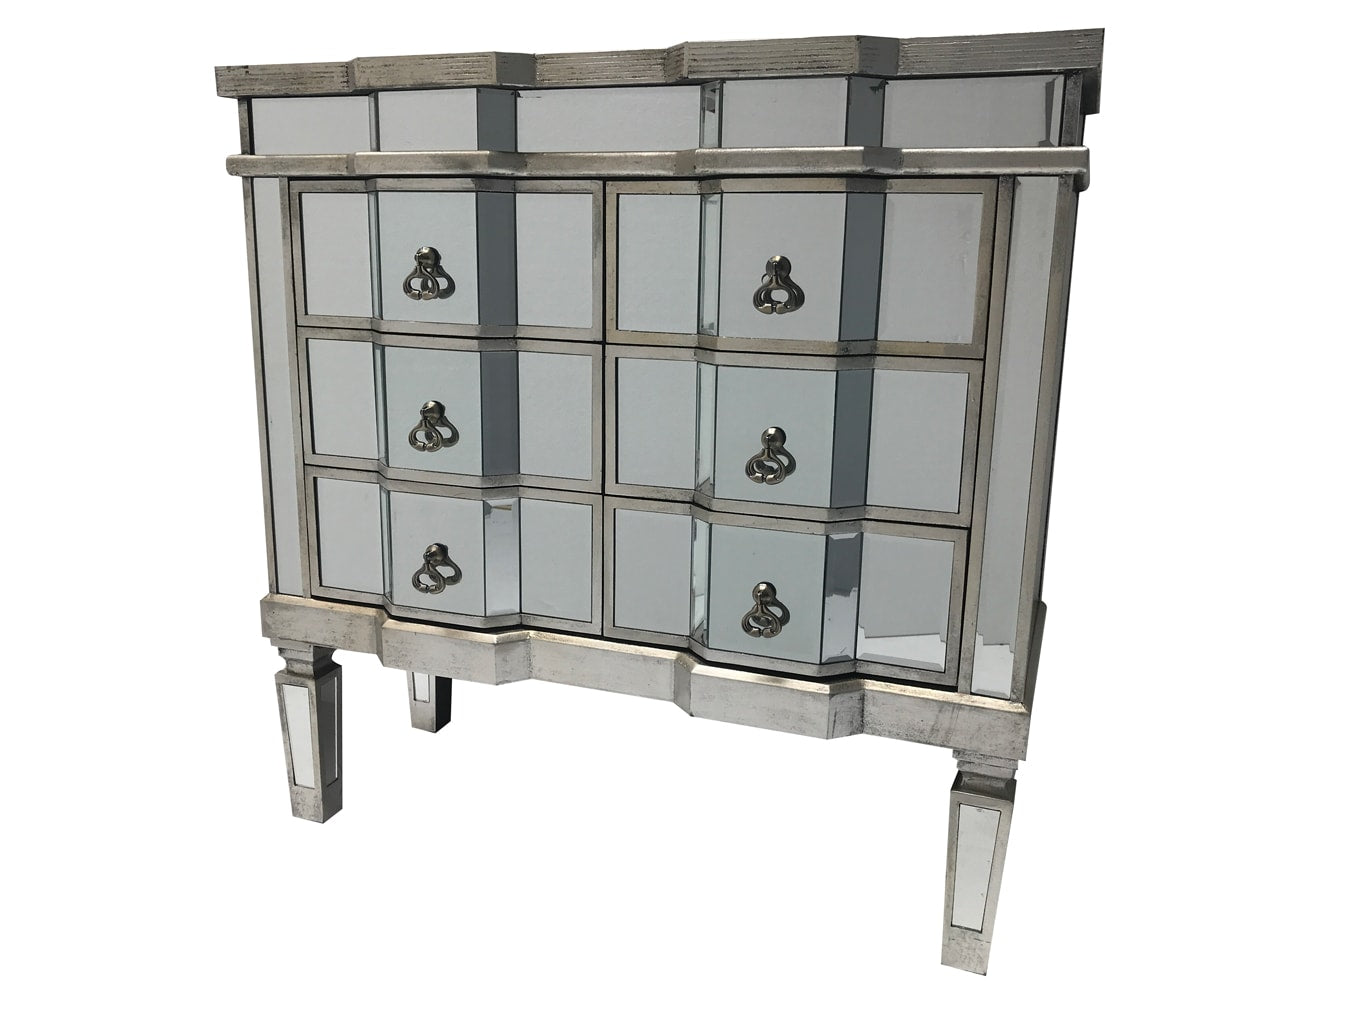 Charleston mirrored chest of drawers, 6 drawers, antique silver finish